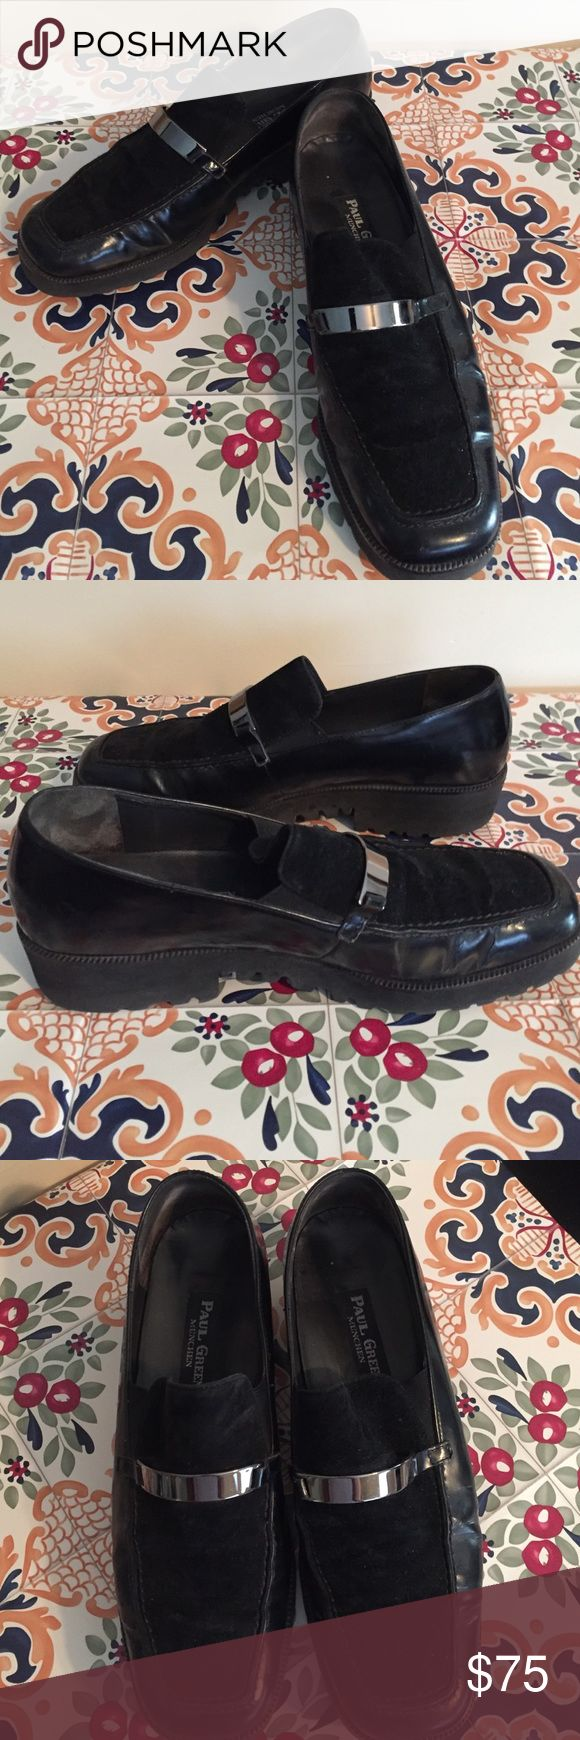 Paul Green black leather & suede loafer Paul Green black leather & suede loafer with square toe box. Silver bar accent across top of shoe. Thick rubber soles = unbelievable comfort. Sz. 8 Paul Green Shoes Flats & Loafers